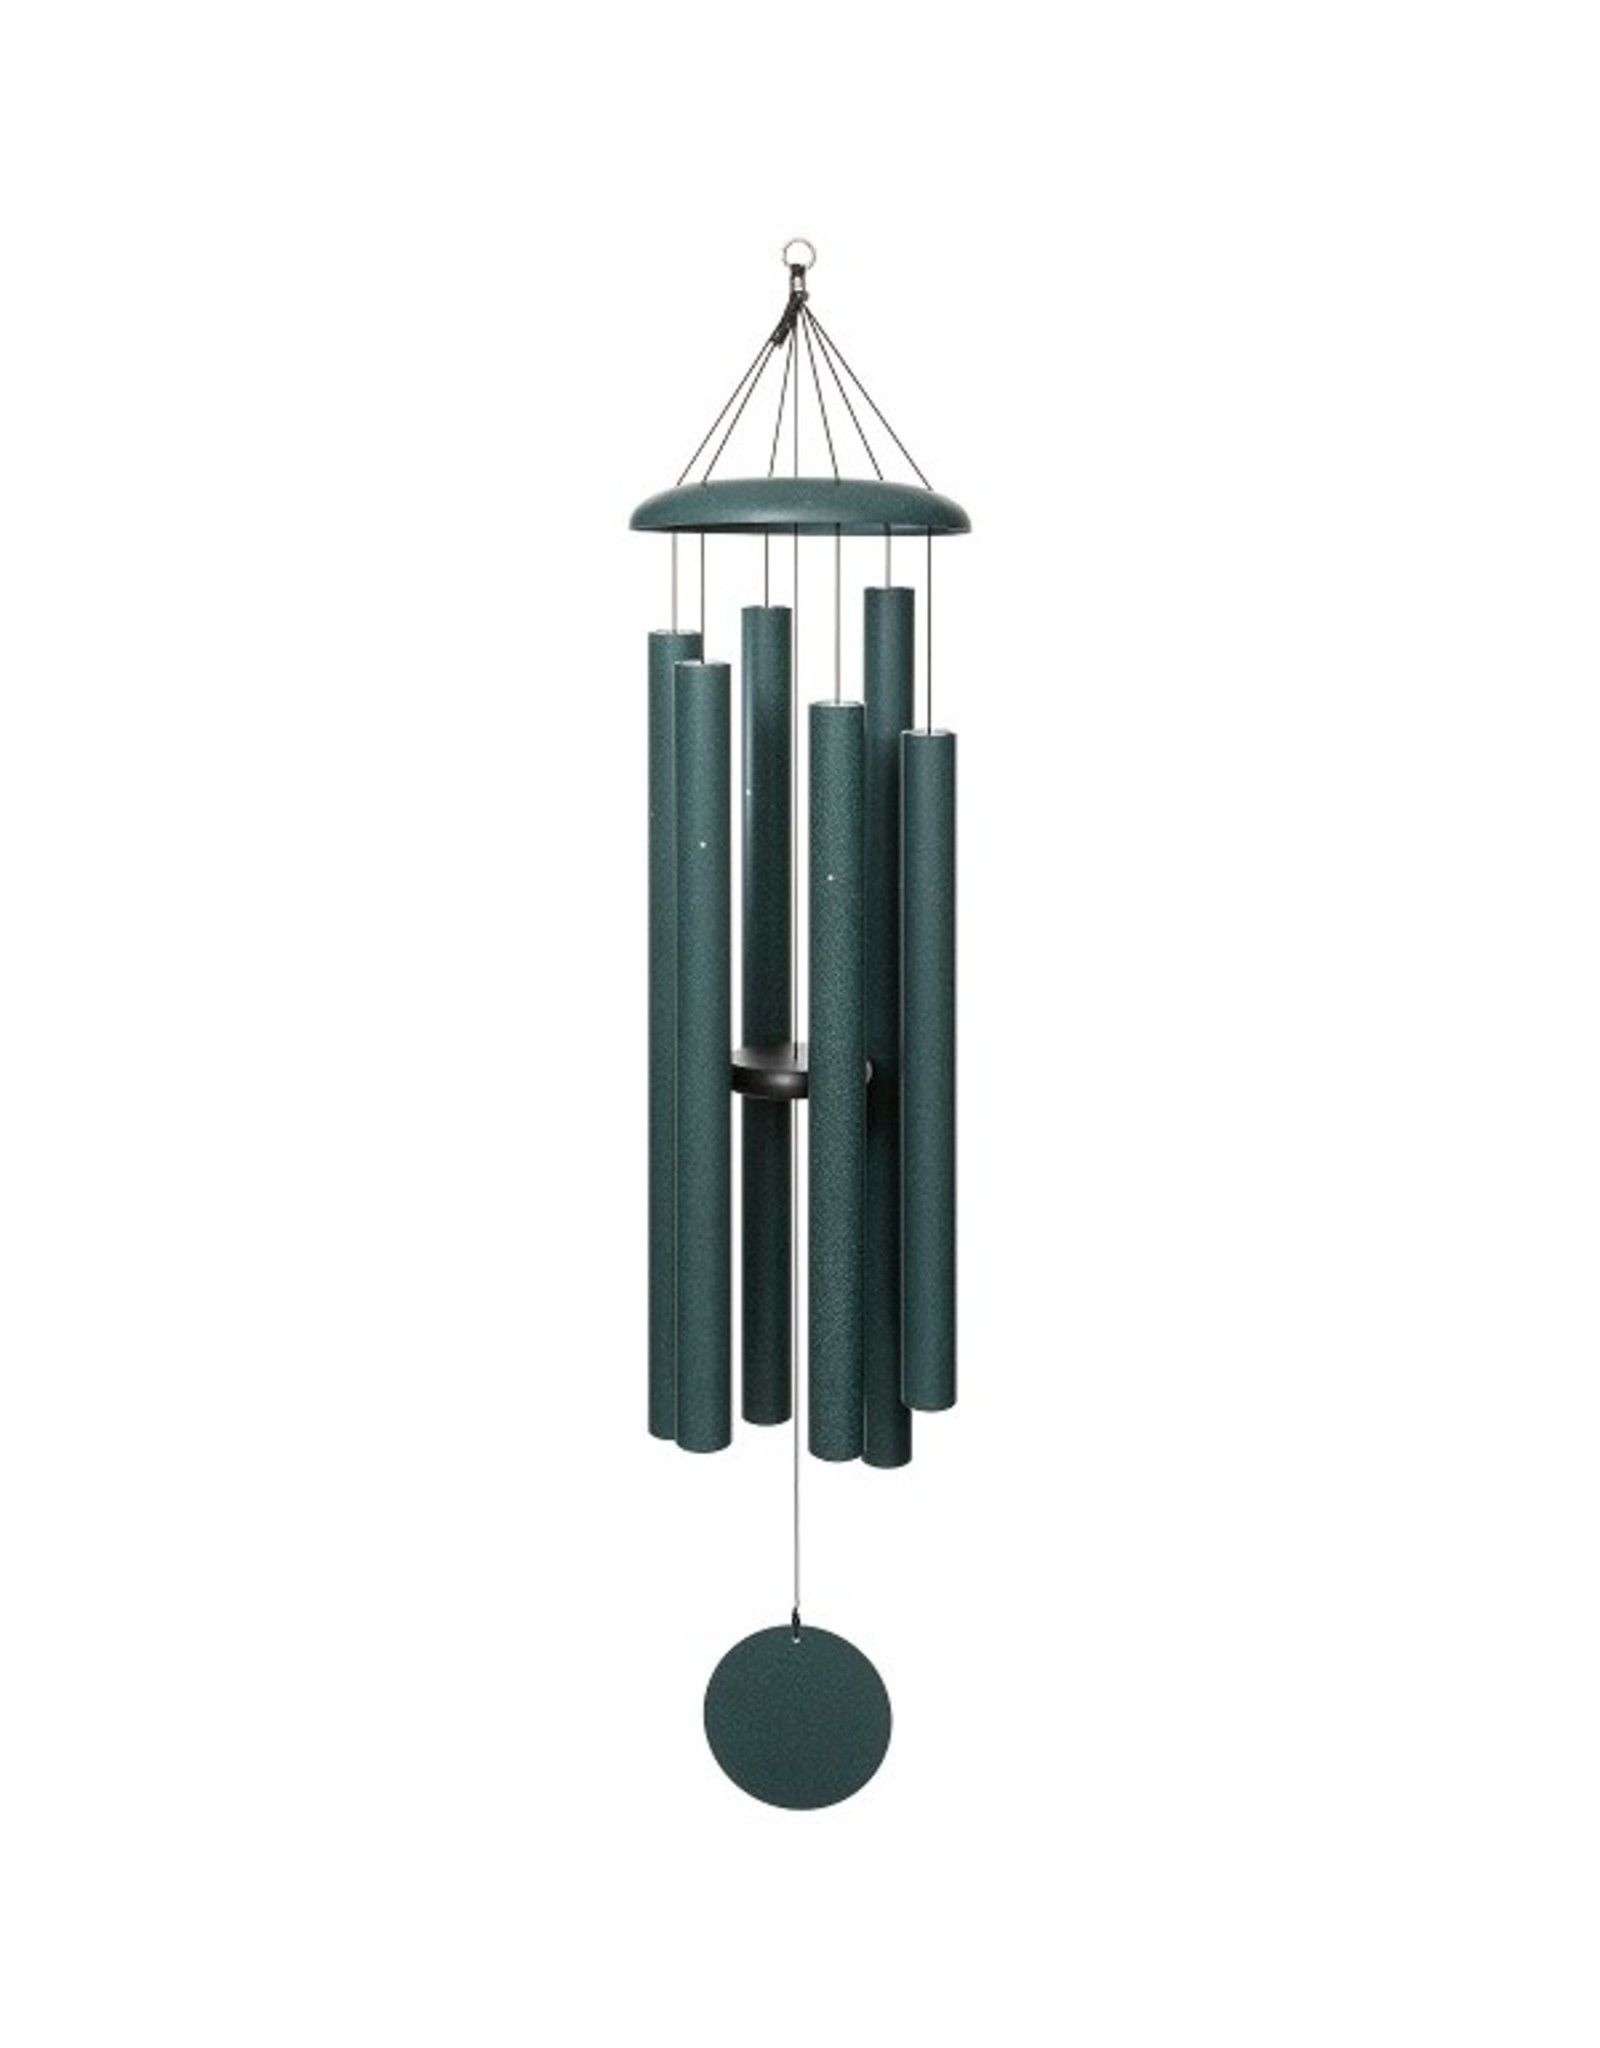 "Wind River Chimes CORINTHIAN BELLS 60"" CHIME"